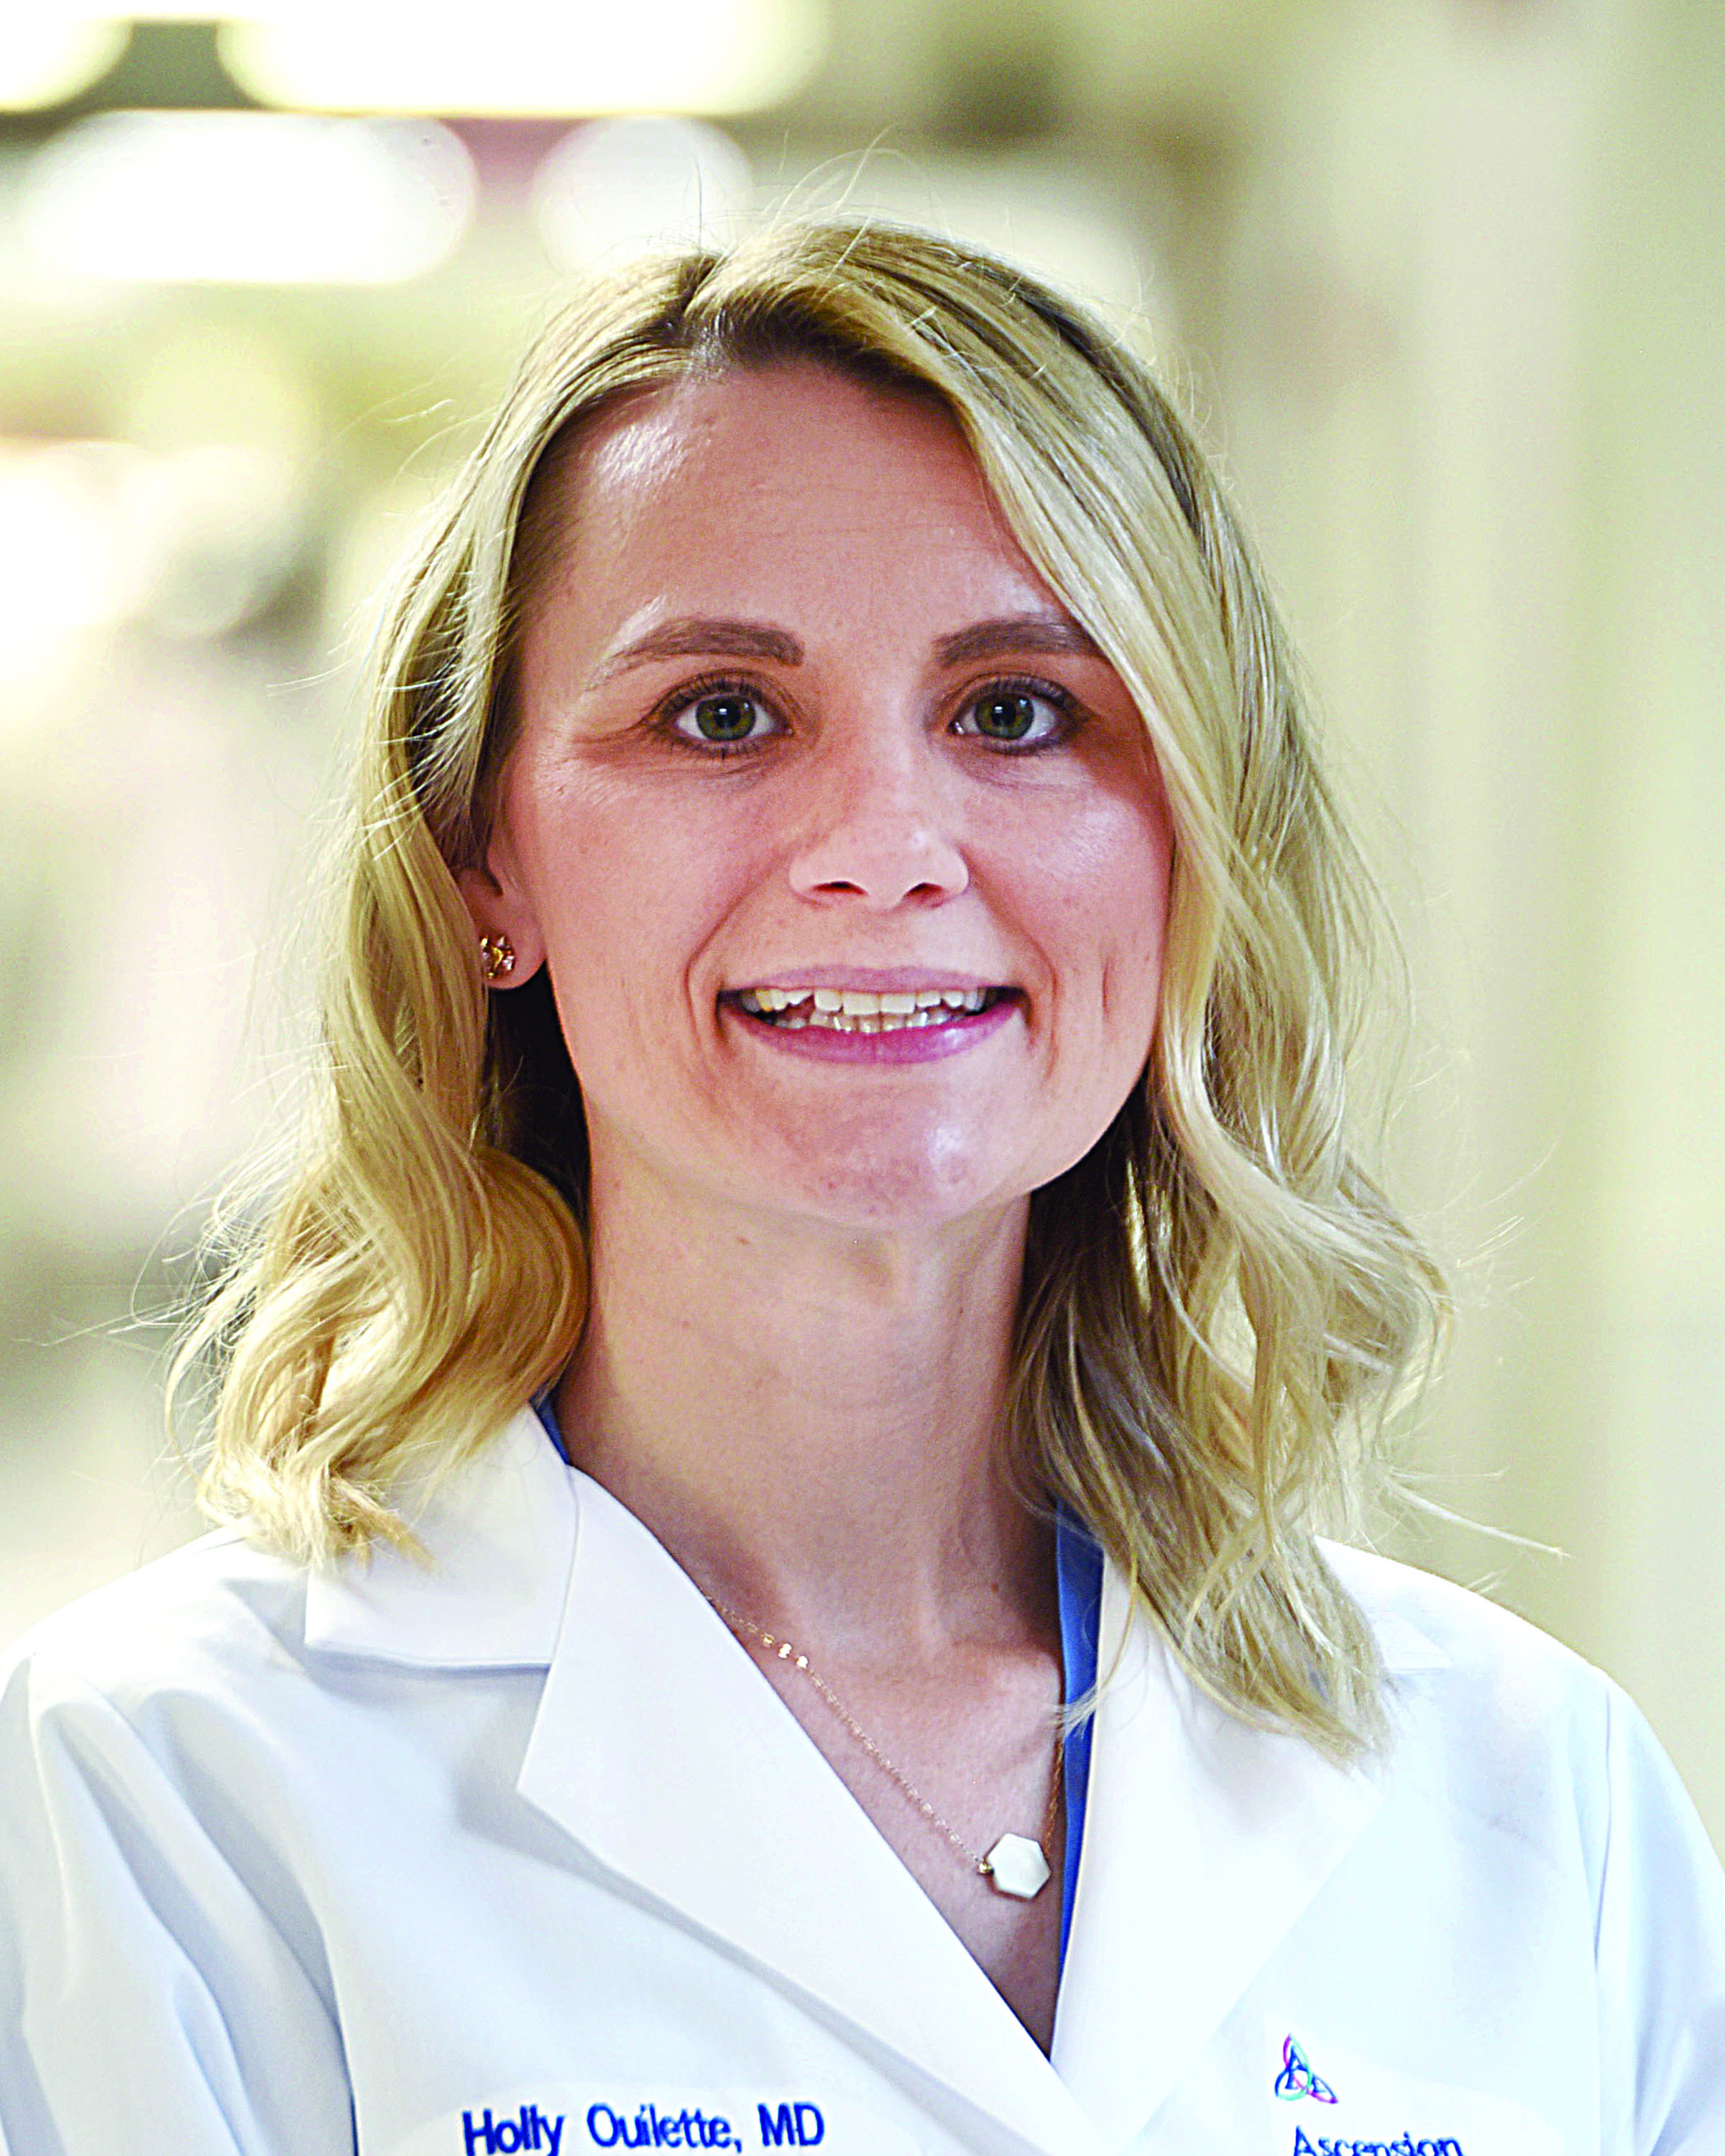 Holly Ouillette, MD